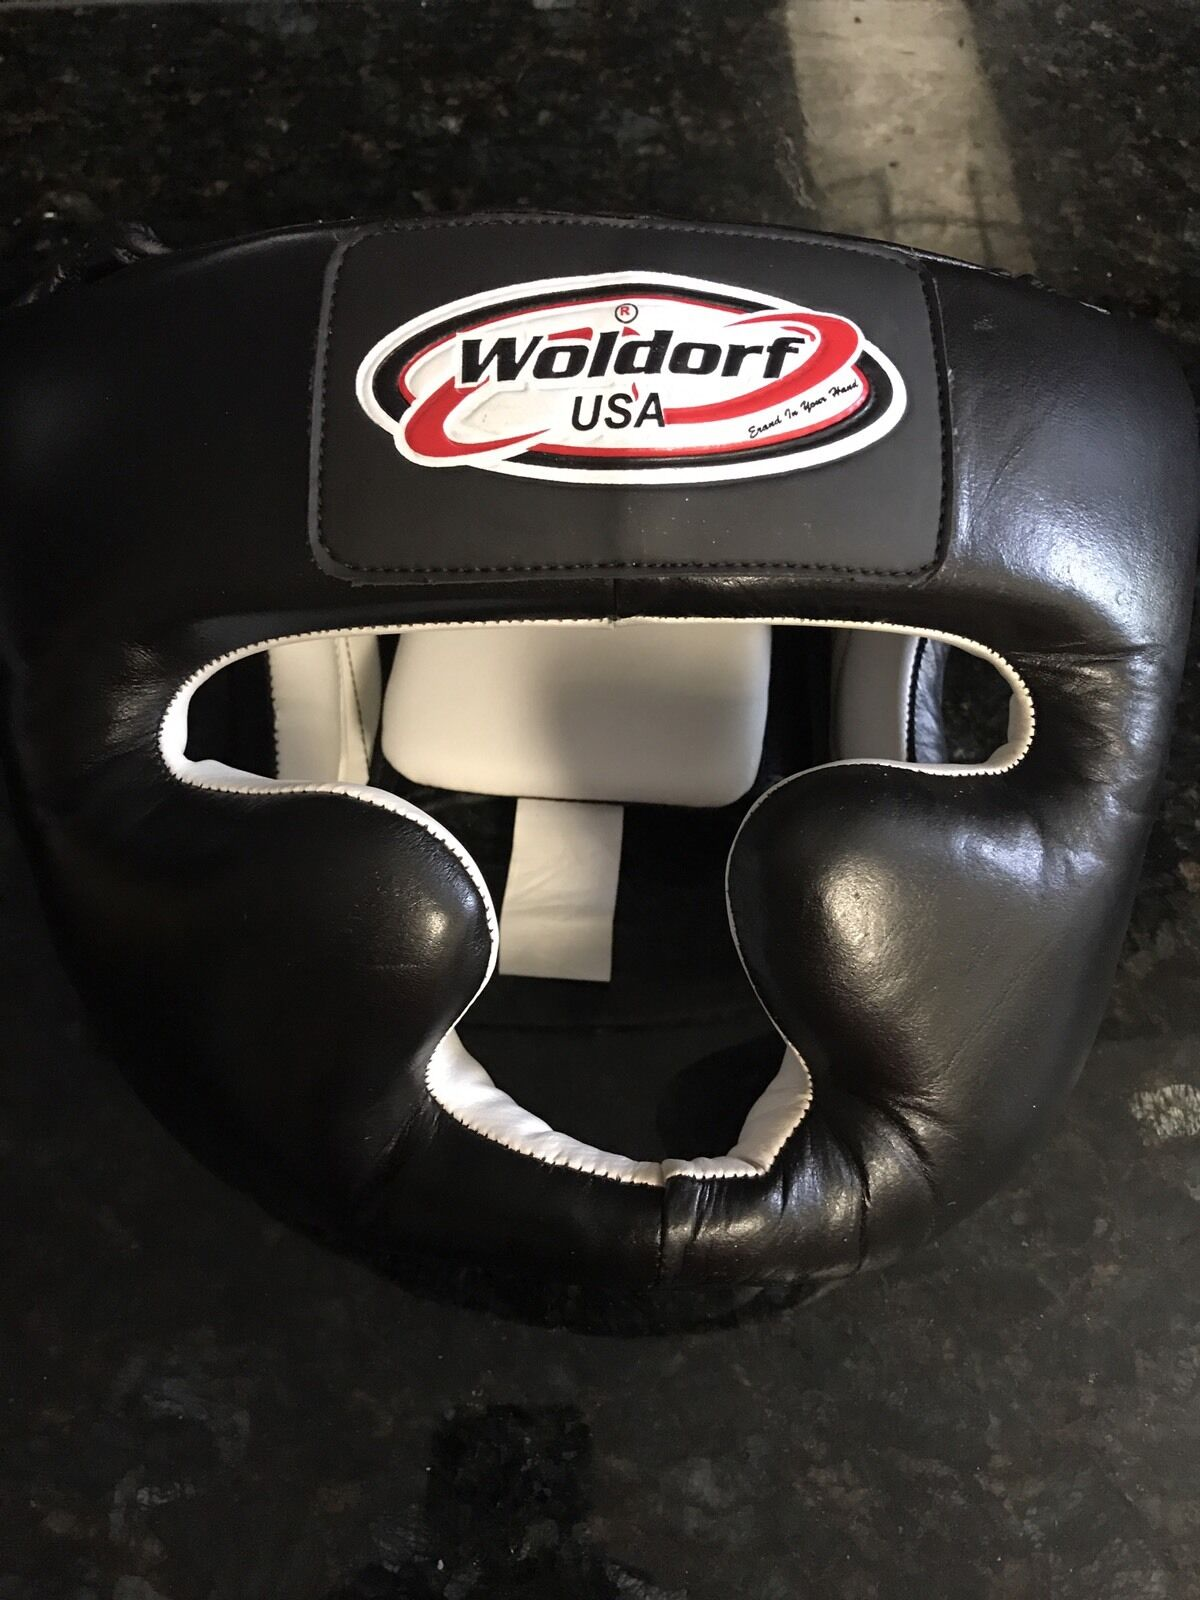 Woldorf USA  Fighting Sports  Usa Boxing Competition Headgear size L  fishional store for sale